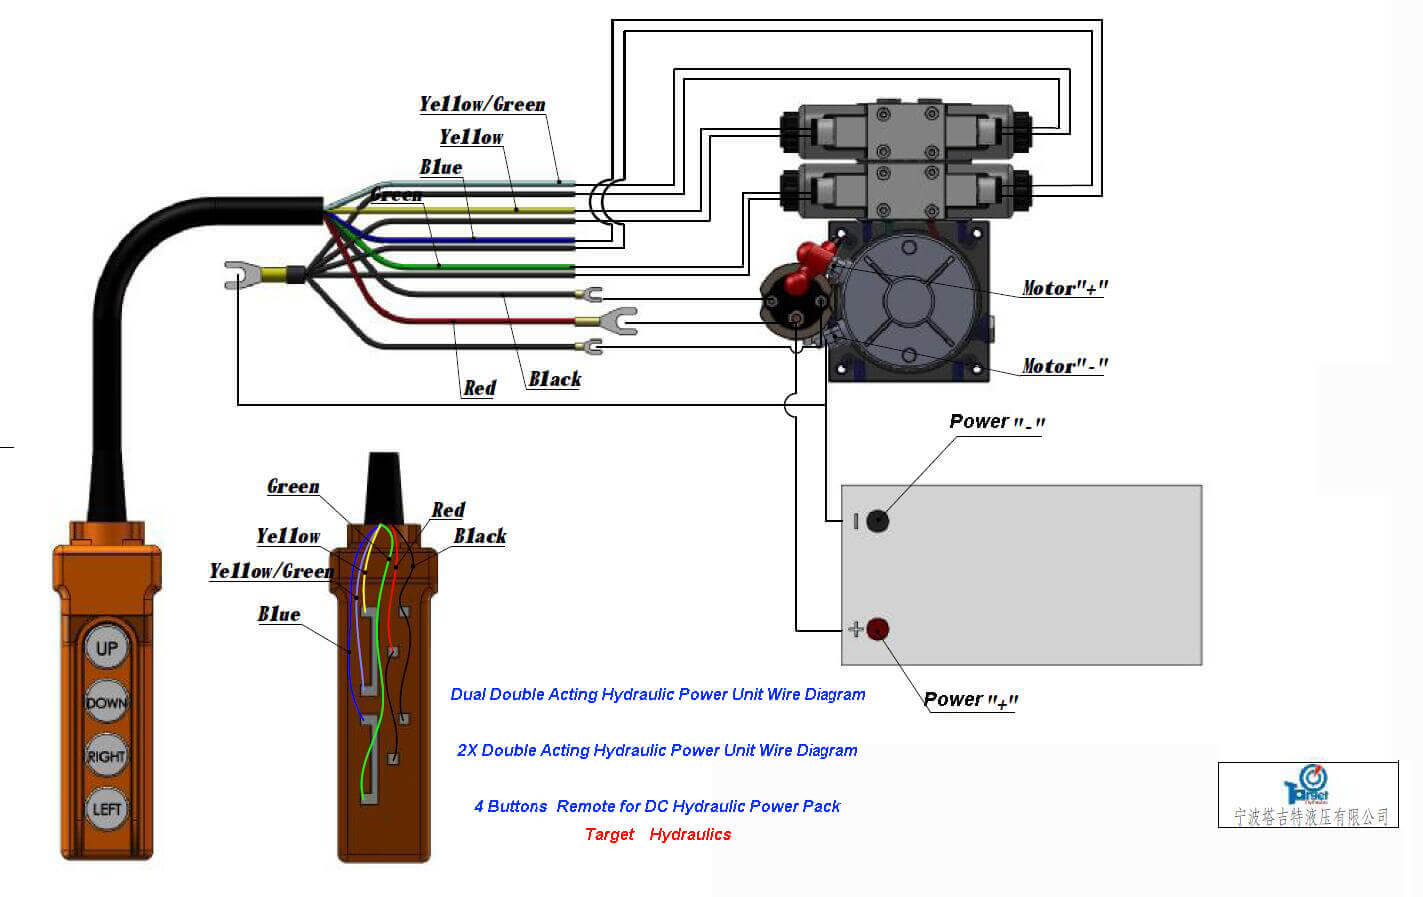 dual double acting hydraulic cylinder Power Units Wiring Diagram drawing how to wire hydraulic power pack,power unit diagram design dc wiring diagram at n-0.co